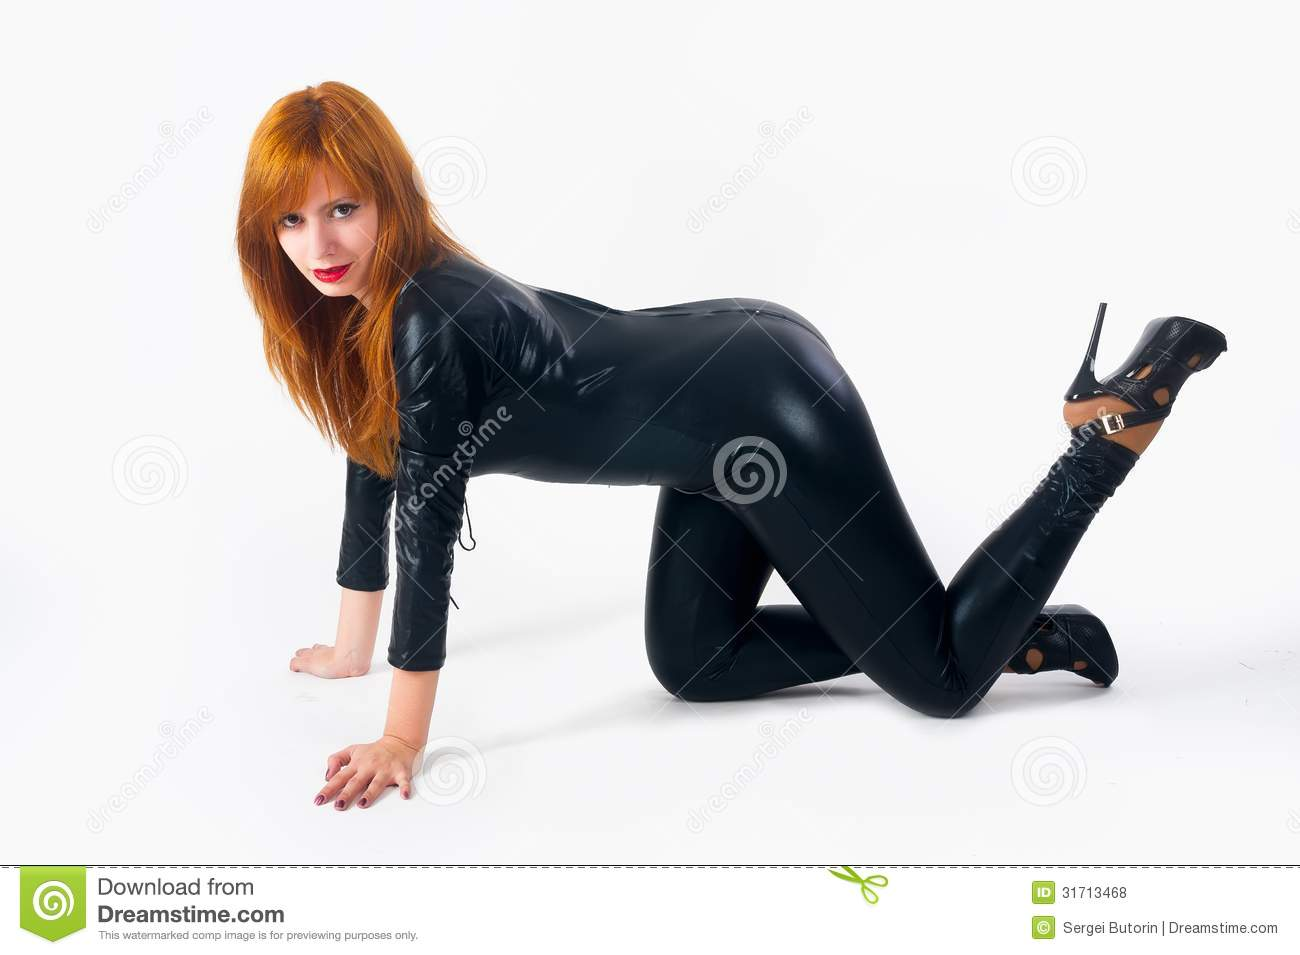 escort girl sweden cat suit